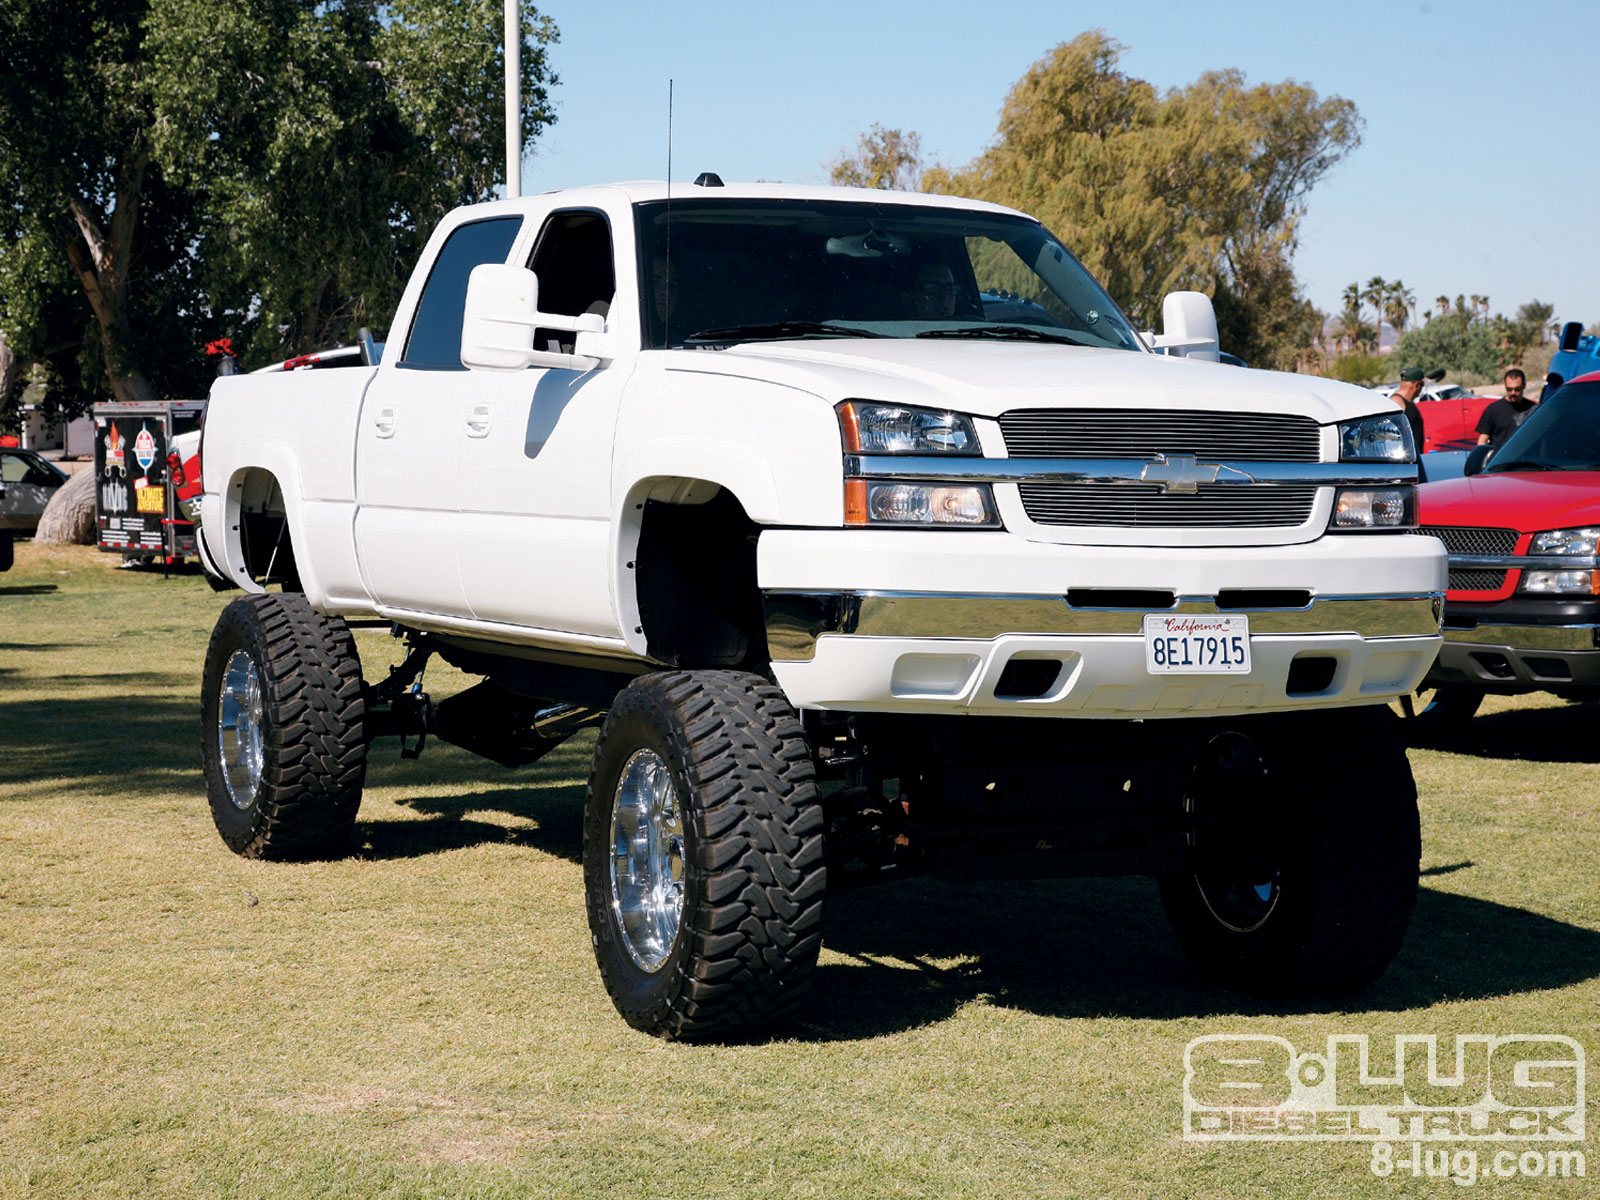 Home Truck Chevy Trucks Lifted AxZcO5bE 1600x1200